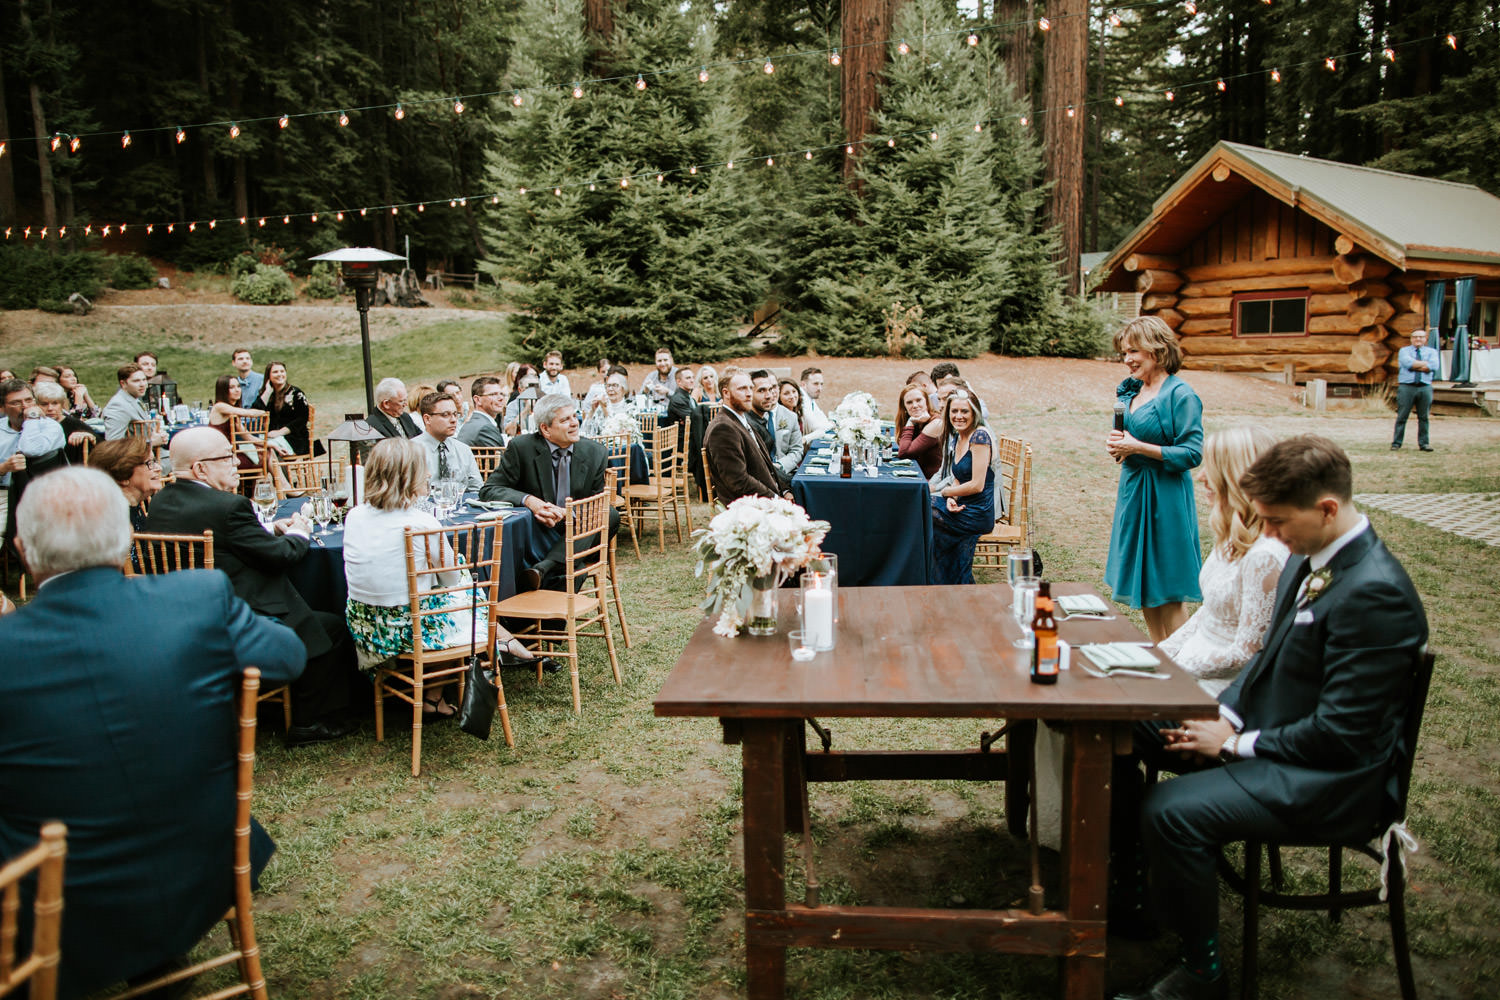 Photograph of the mother of the bride giving the speech during the wedding at Camp Campbell in California